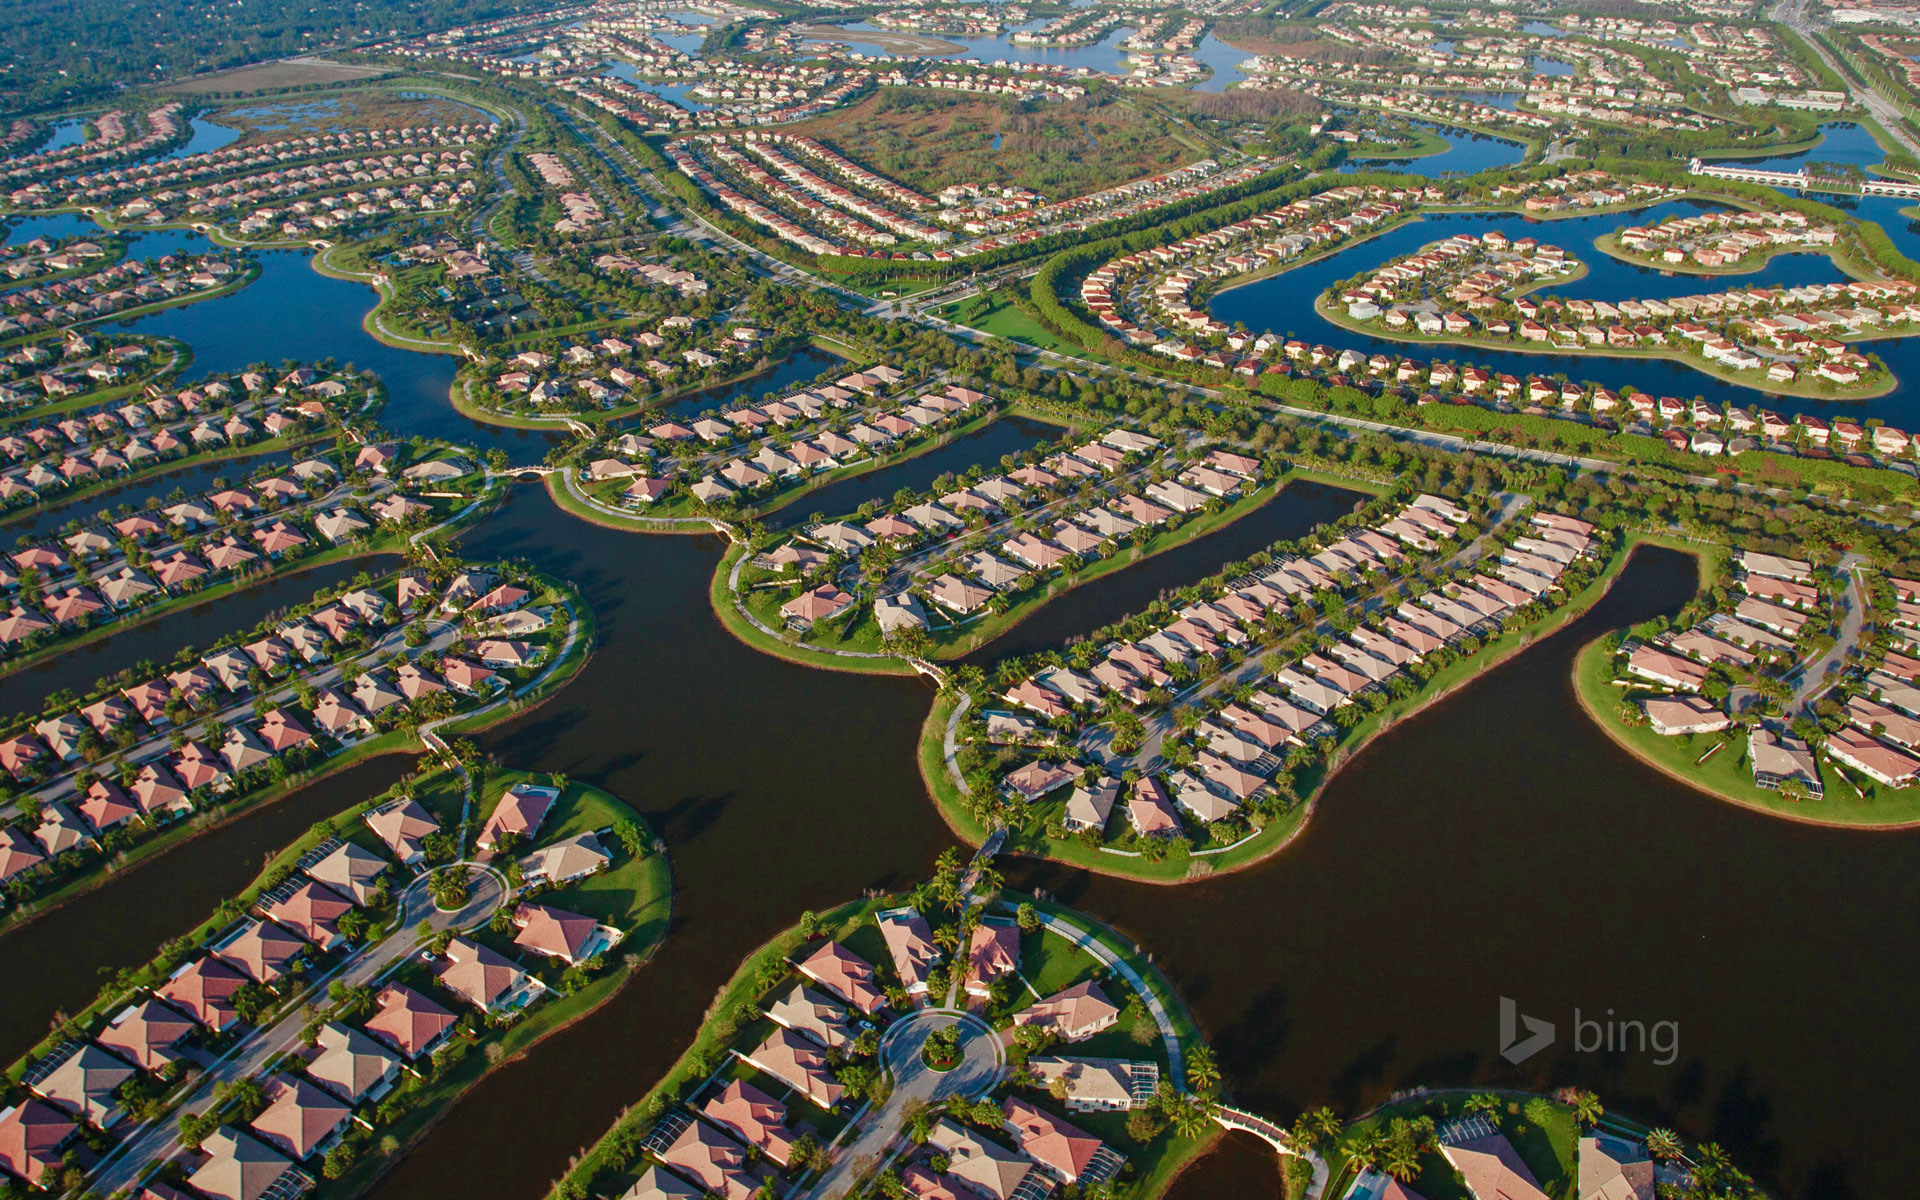 Housing Development West Palm Beach Florida 169 Paul Nicklen Corbis Bing Wallpapers Sonu Rai